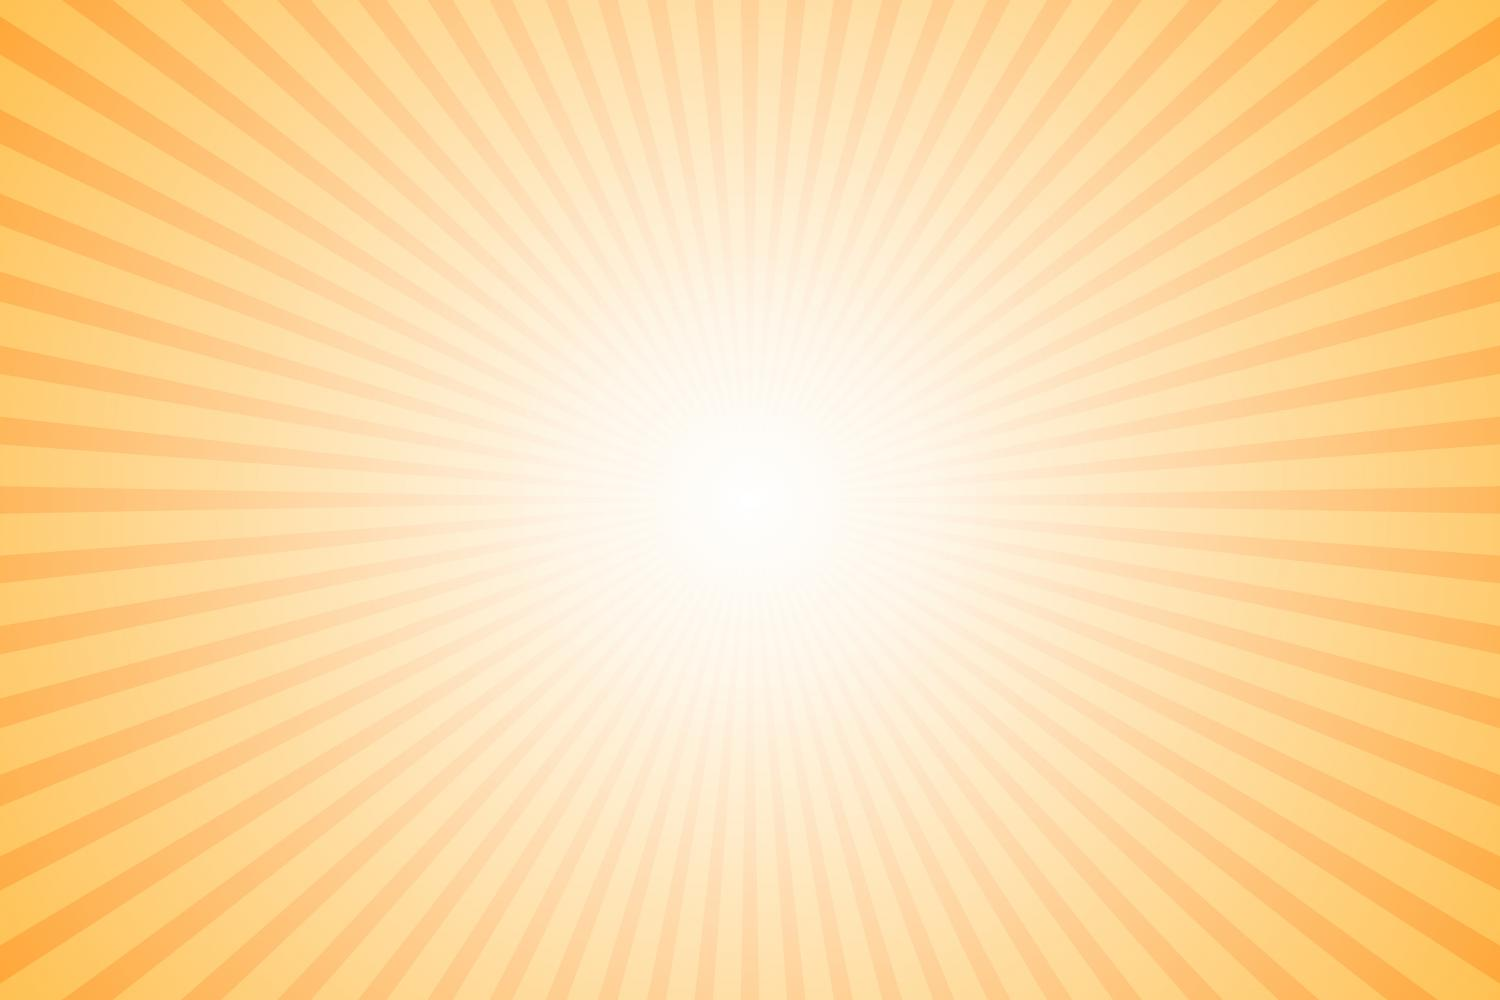 Download Free Ray Burst Background Graphic By Davidzydd Creative Fabrica for Cricut Explore, Silhouette and other cutting machines.